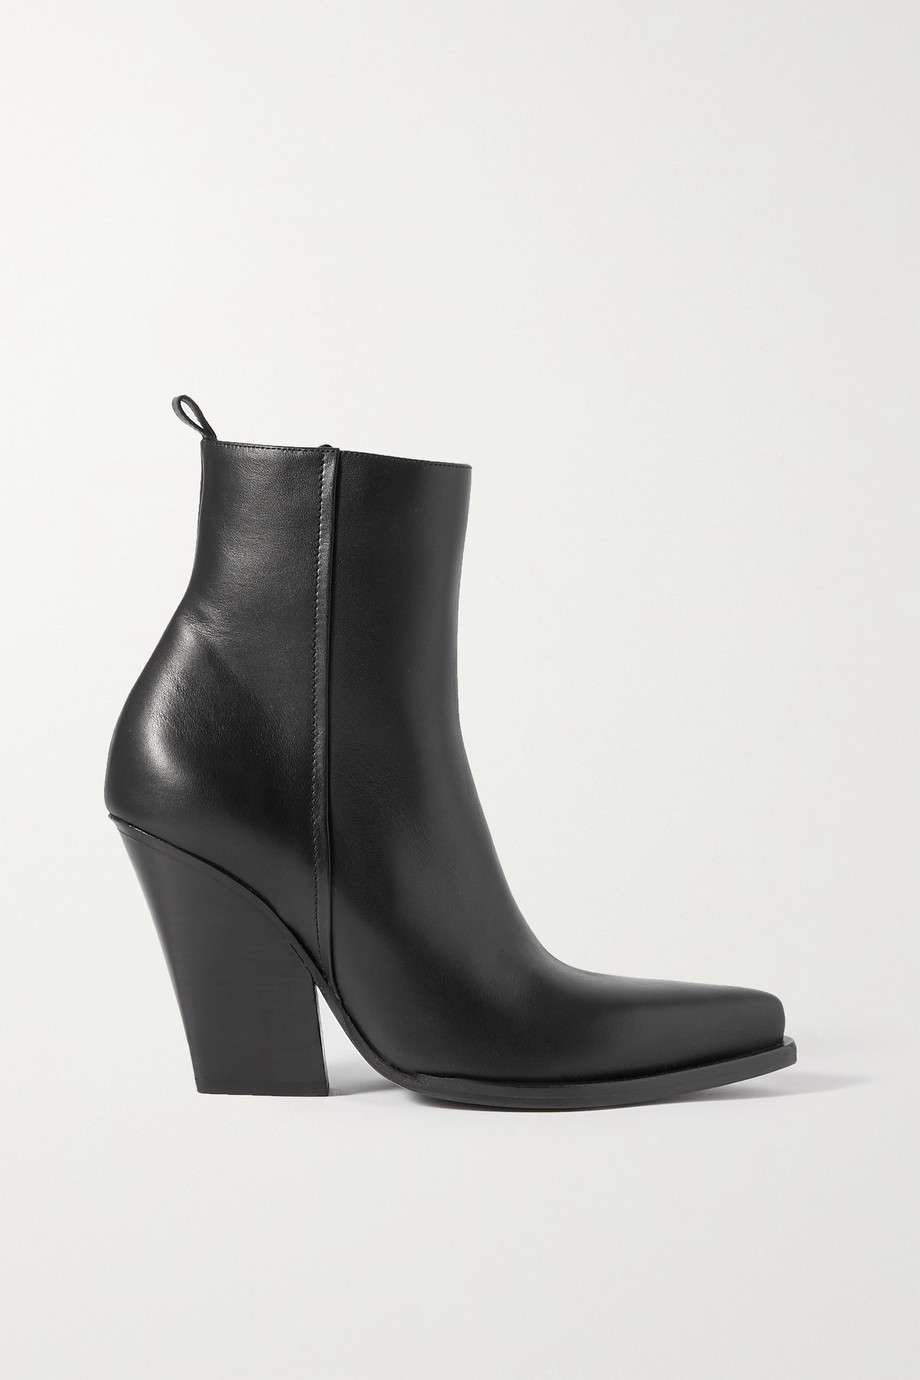 Magda Butrym Leather ankle boots